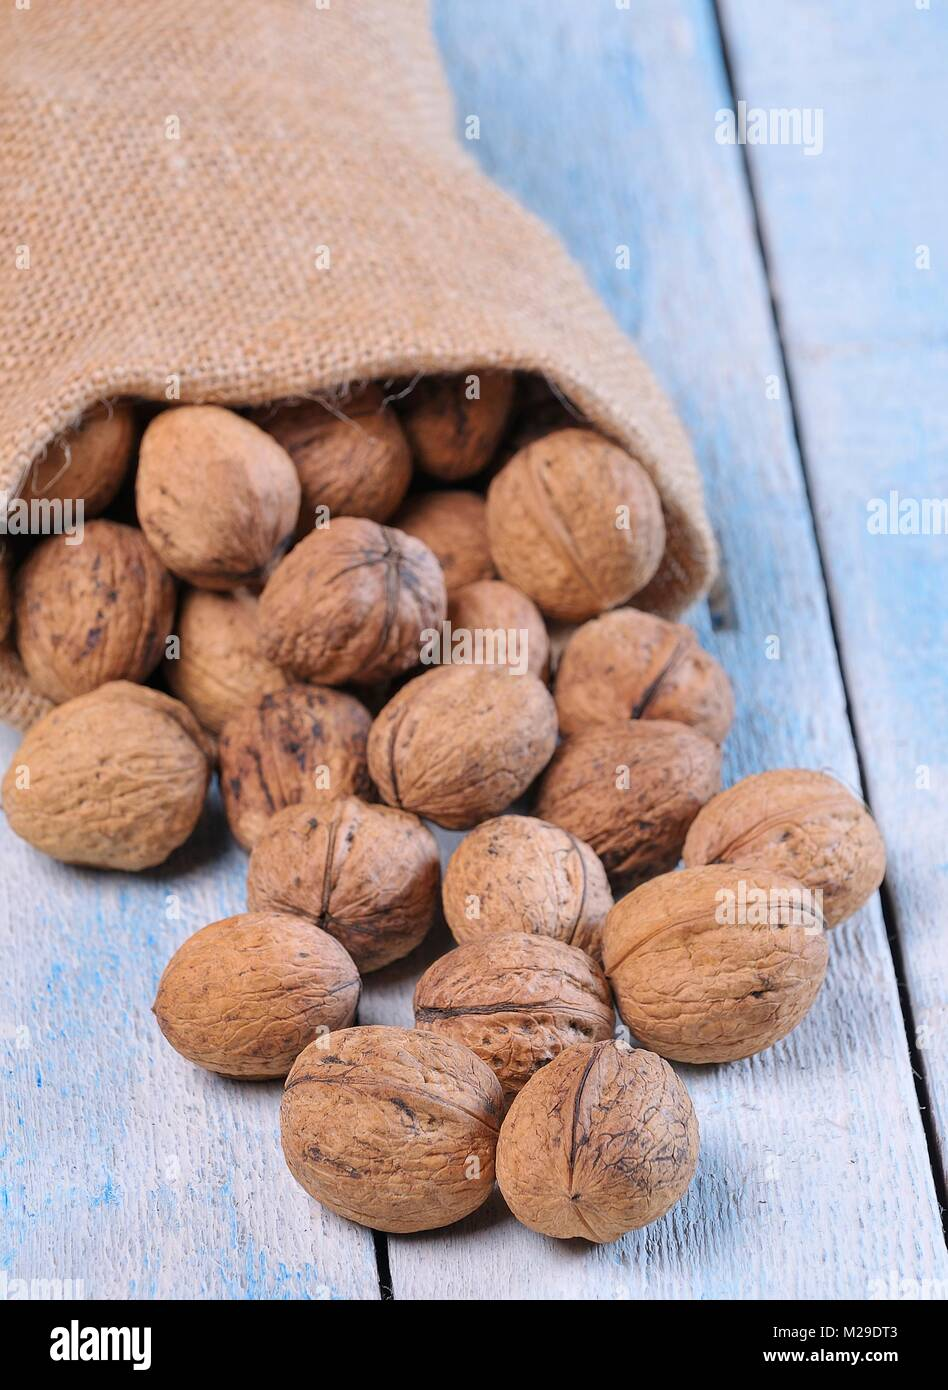 Walnuts on wooden table in the kitchen. - Stock Image